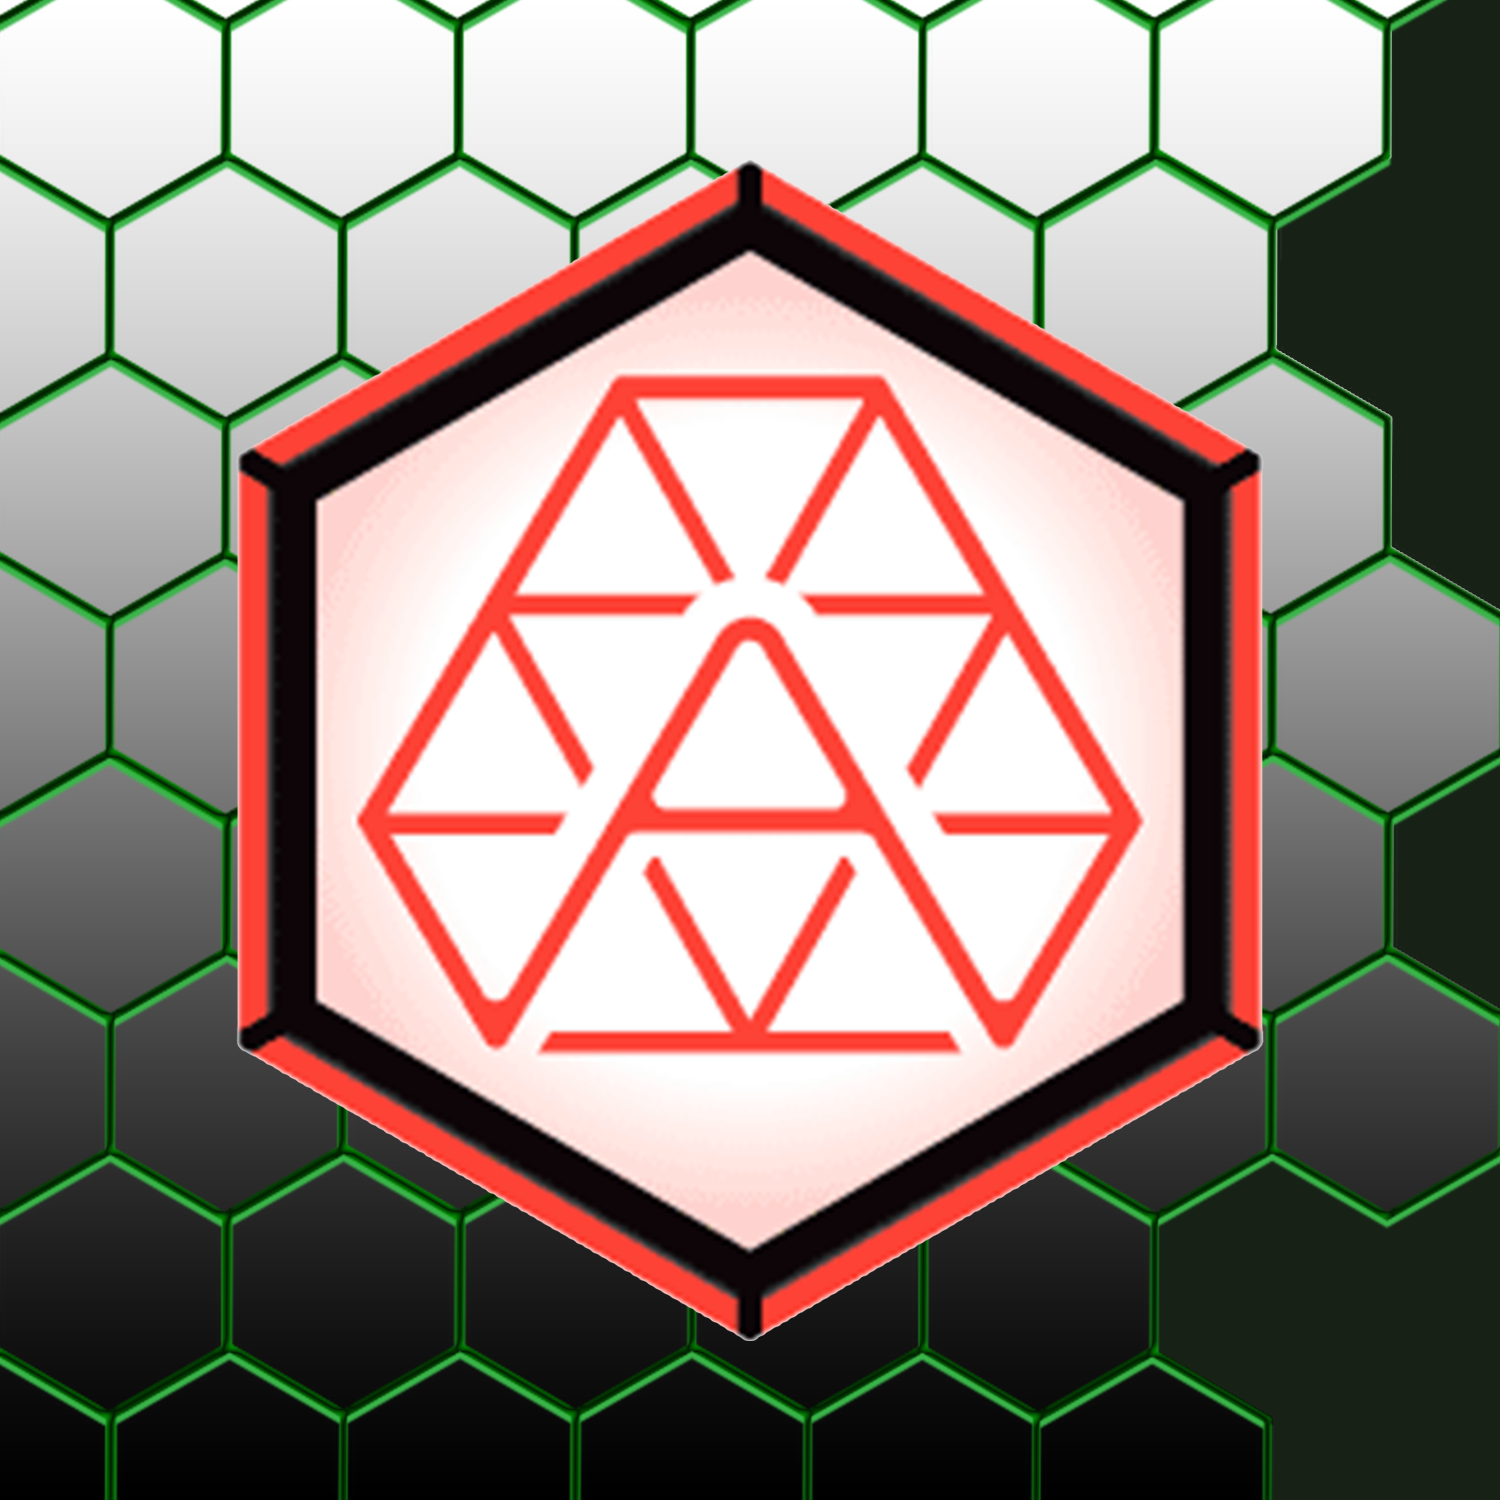 Abaddon Prime Anomaly - The main event, the XM Anomaly, is a large-scale Ingress competition. Join other Enlightened onsite to participate in several challenges over the afternoon.